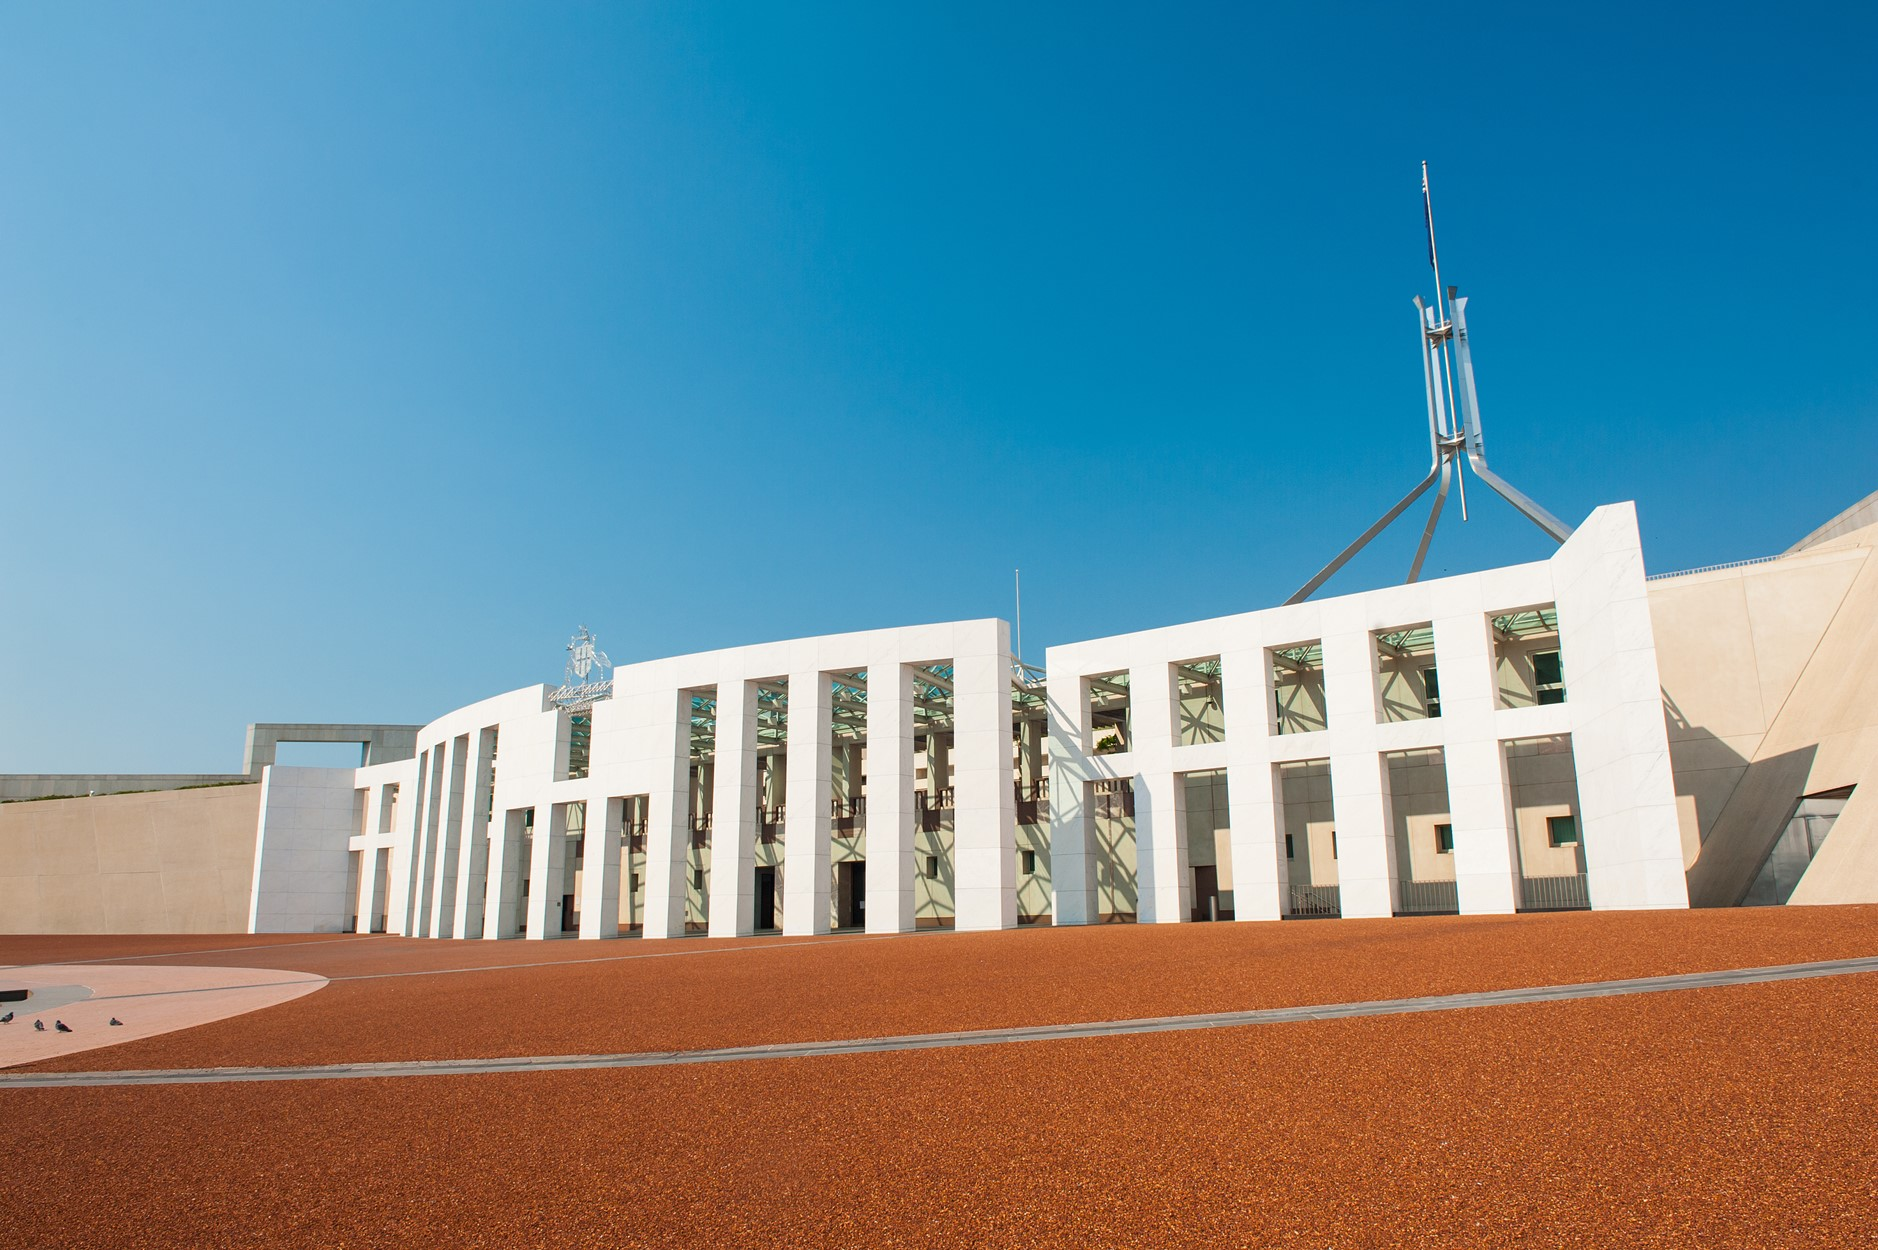 RISING BACKBENCHERS (PART TWO OF THREE): WOMEN TO WATCH